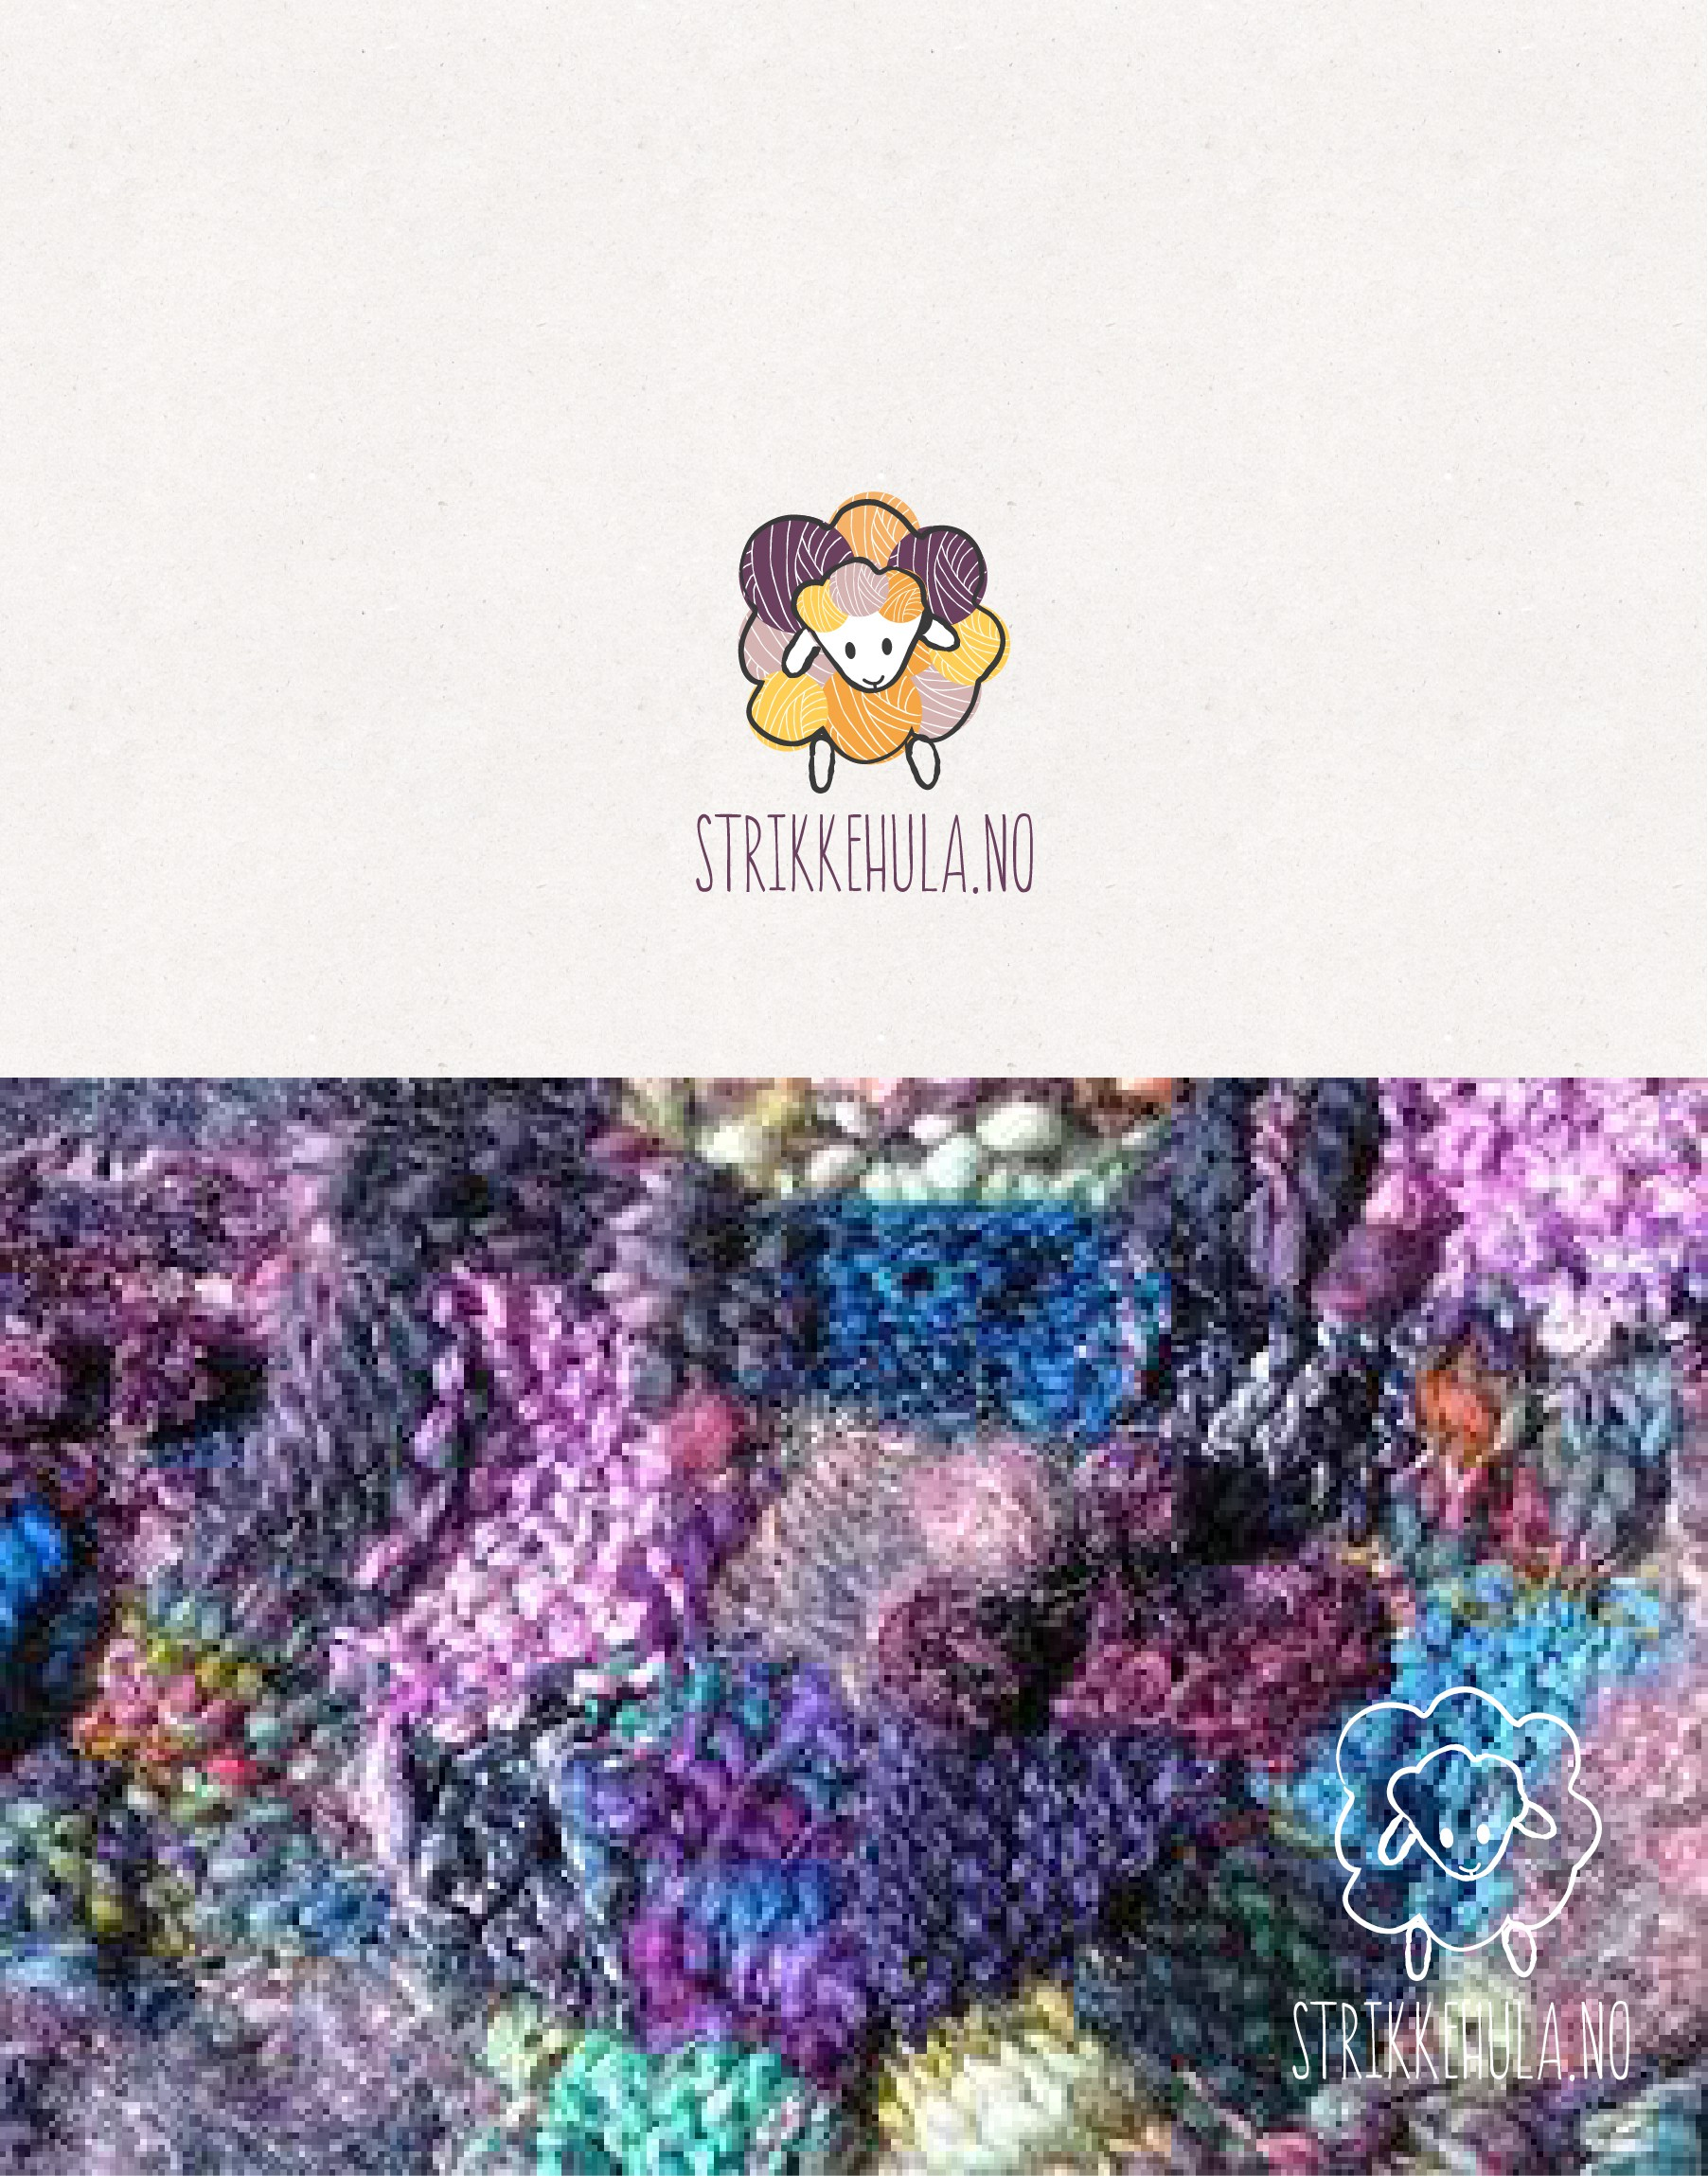 Design the perfect logo for our knitting webshop